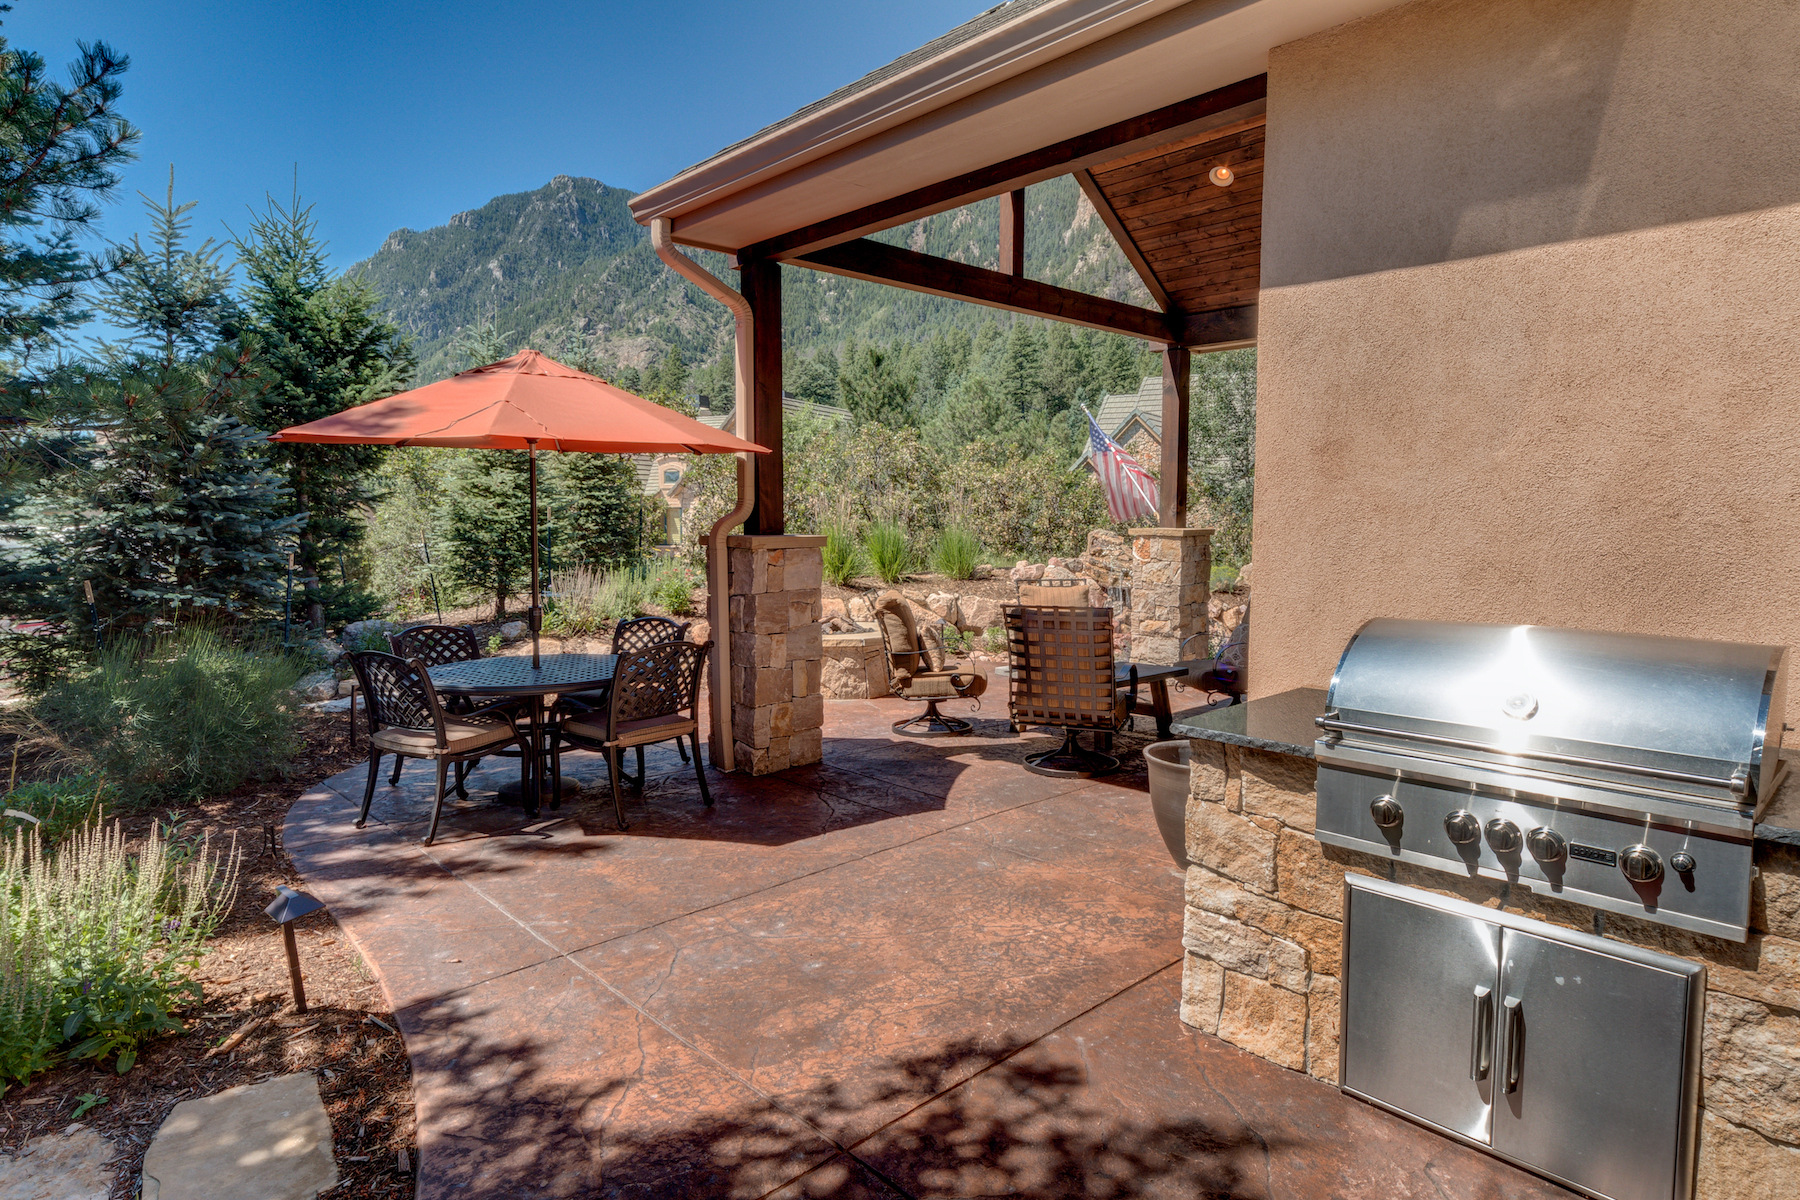 4 - Patio Wraps Around with Built in Gas Grill Next to Kitchen.jpg